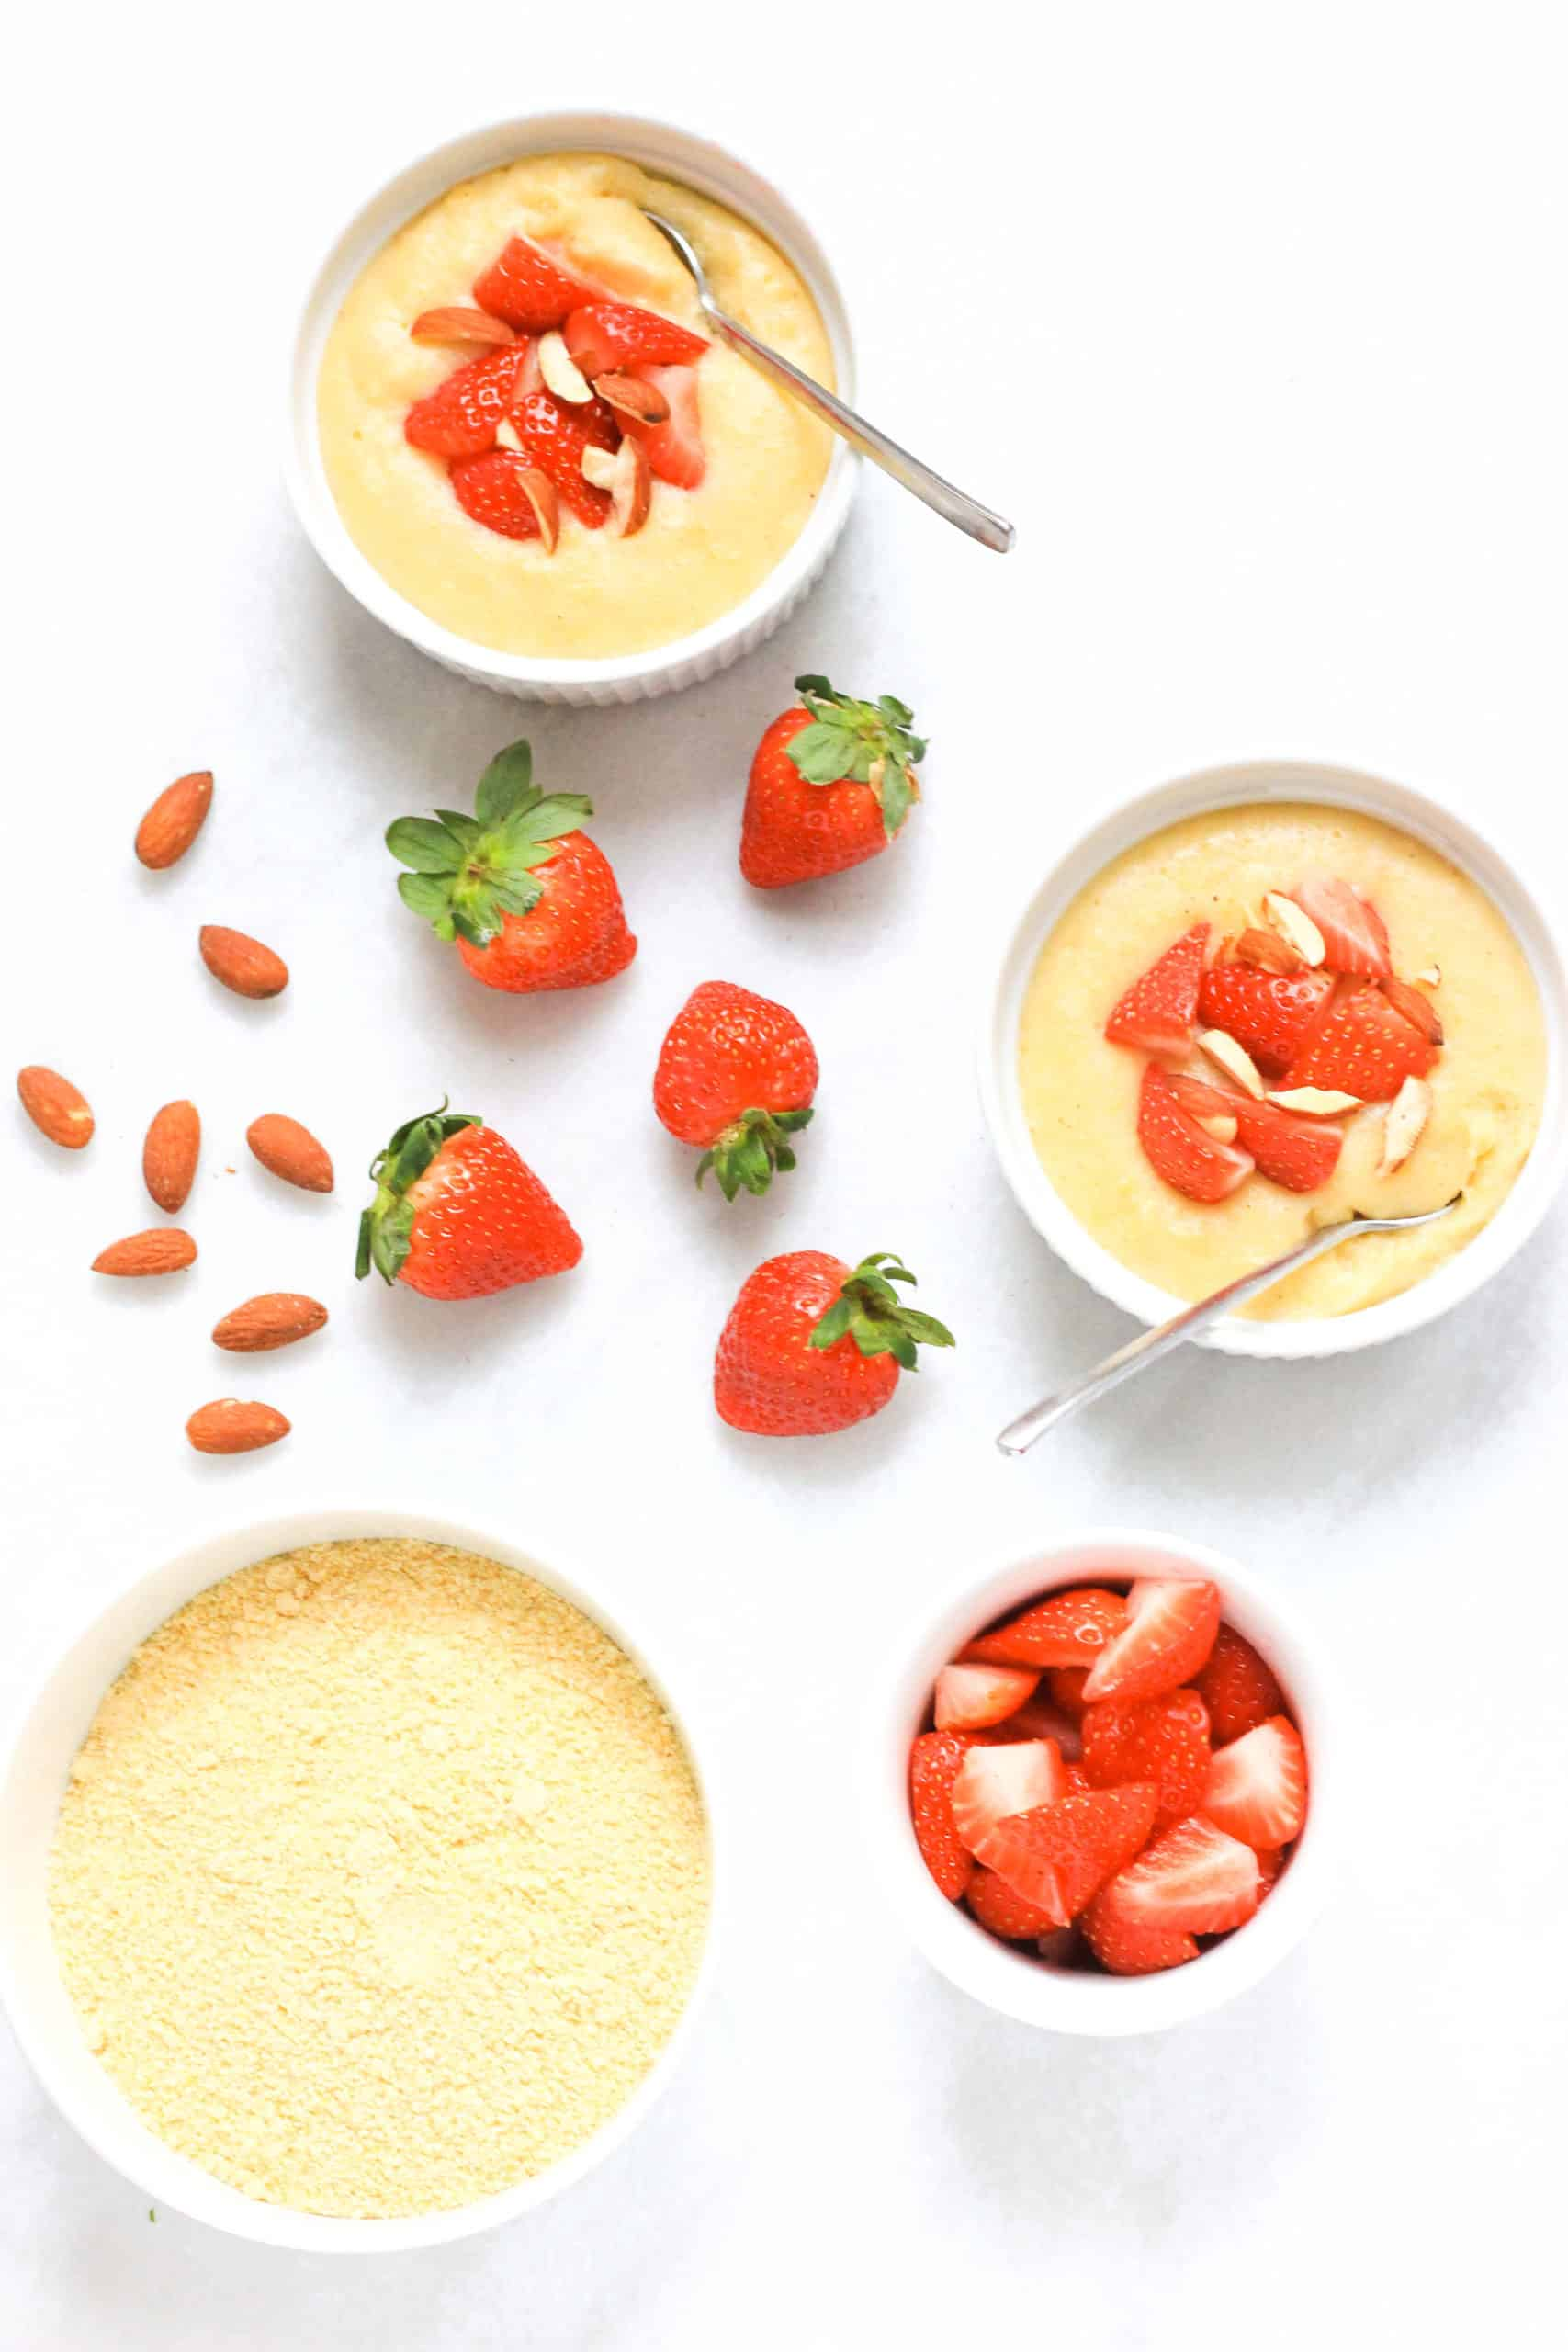 Bowls of creamy breakfast polenta topped with strawberries and almonds.